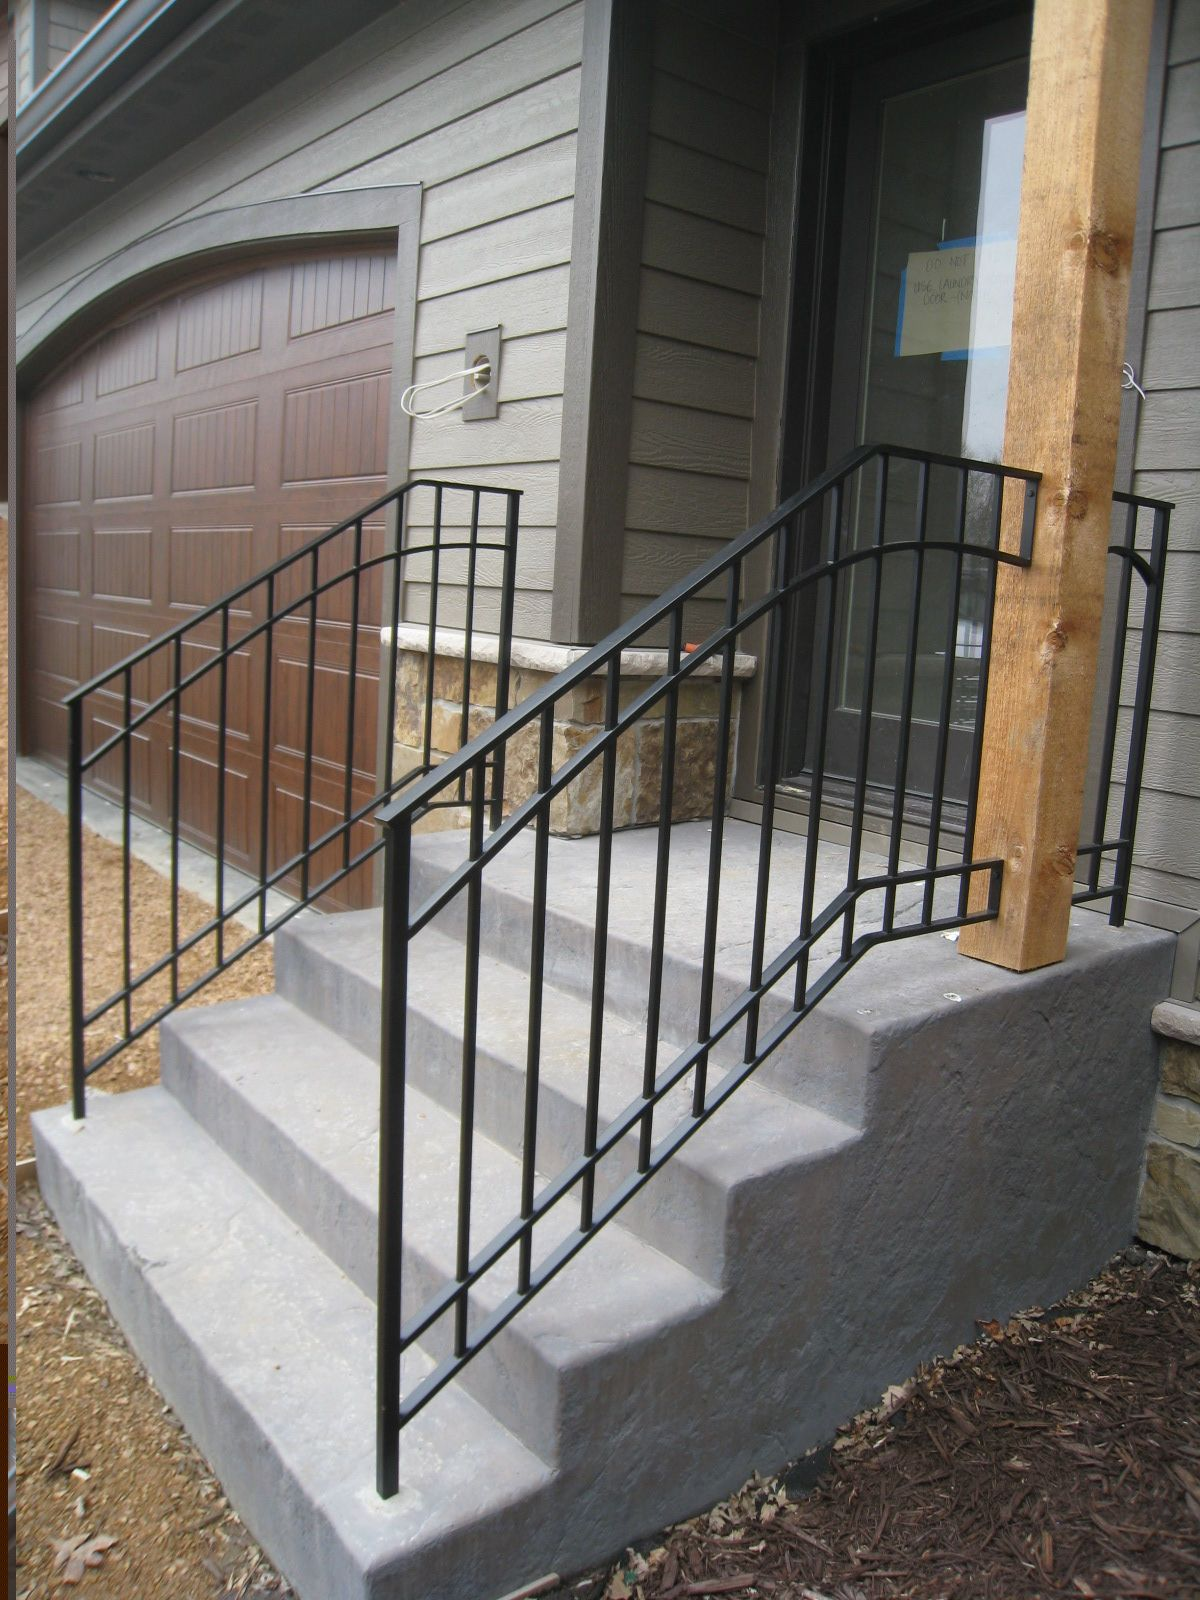 Exterior step railings o 39 brien ornamental iron show my - Metal railings for stairs exterior ...